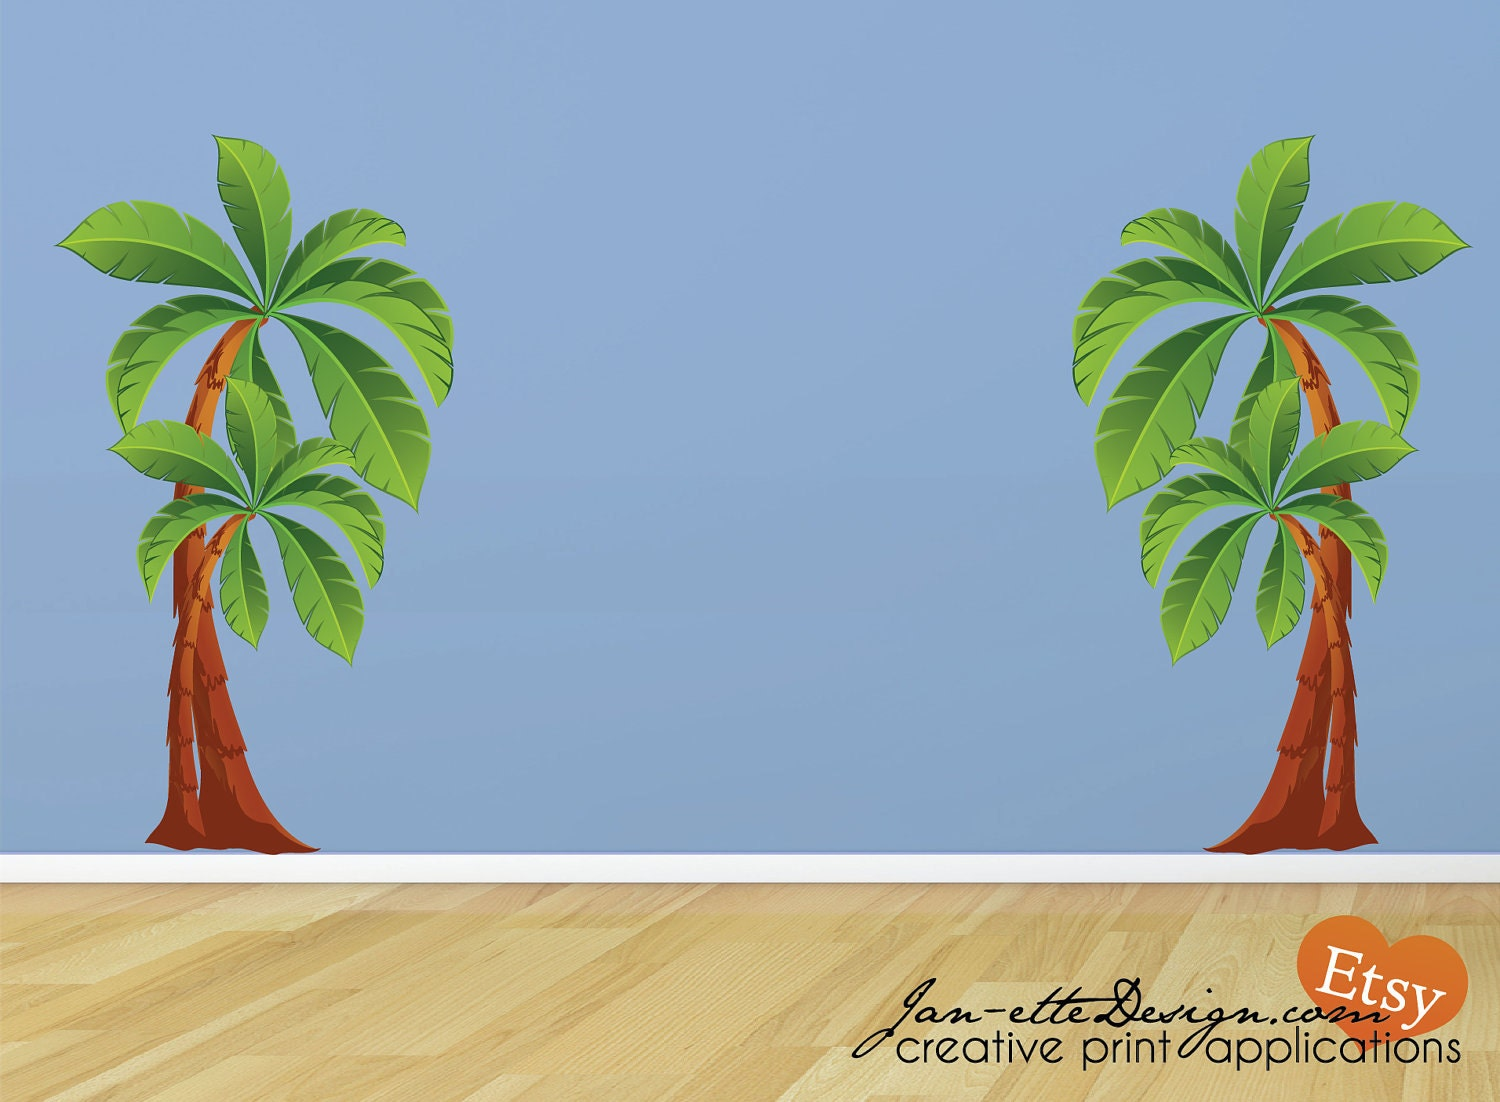 wall decal palm tree color the walls of your house wall decal palm tree request a custom order and have something made just for you